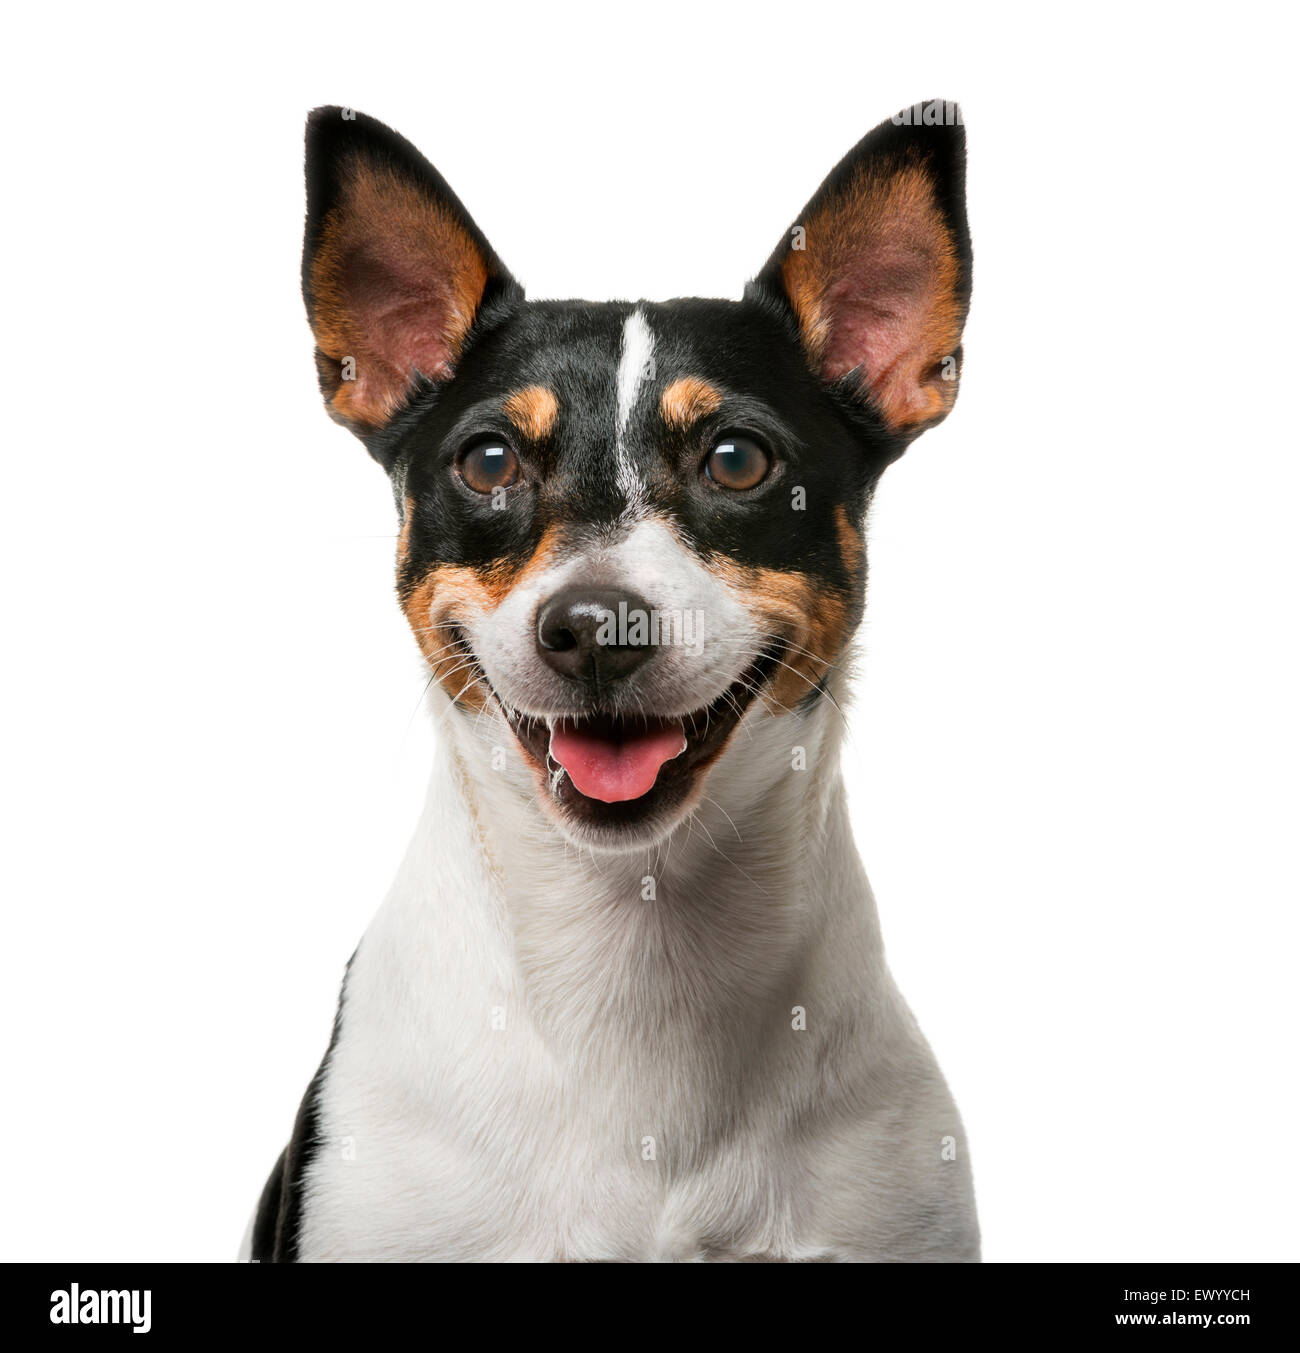 Jack Russell Terrier (7 years old) in front of a white background - Stock Image